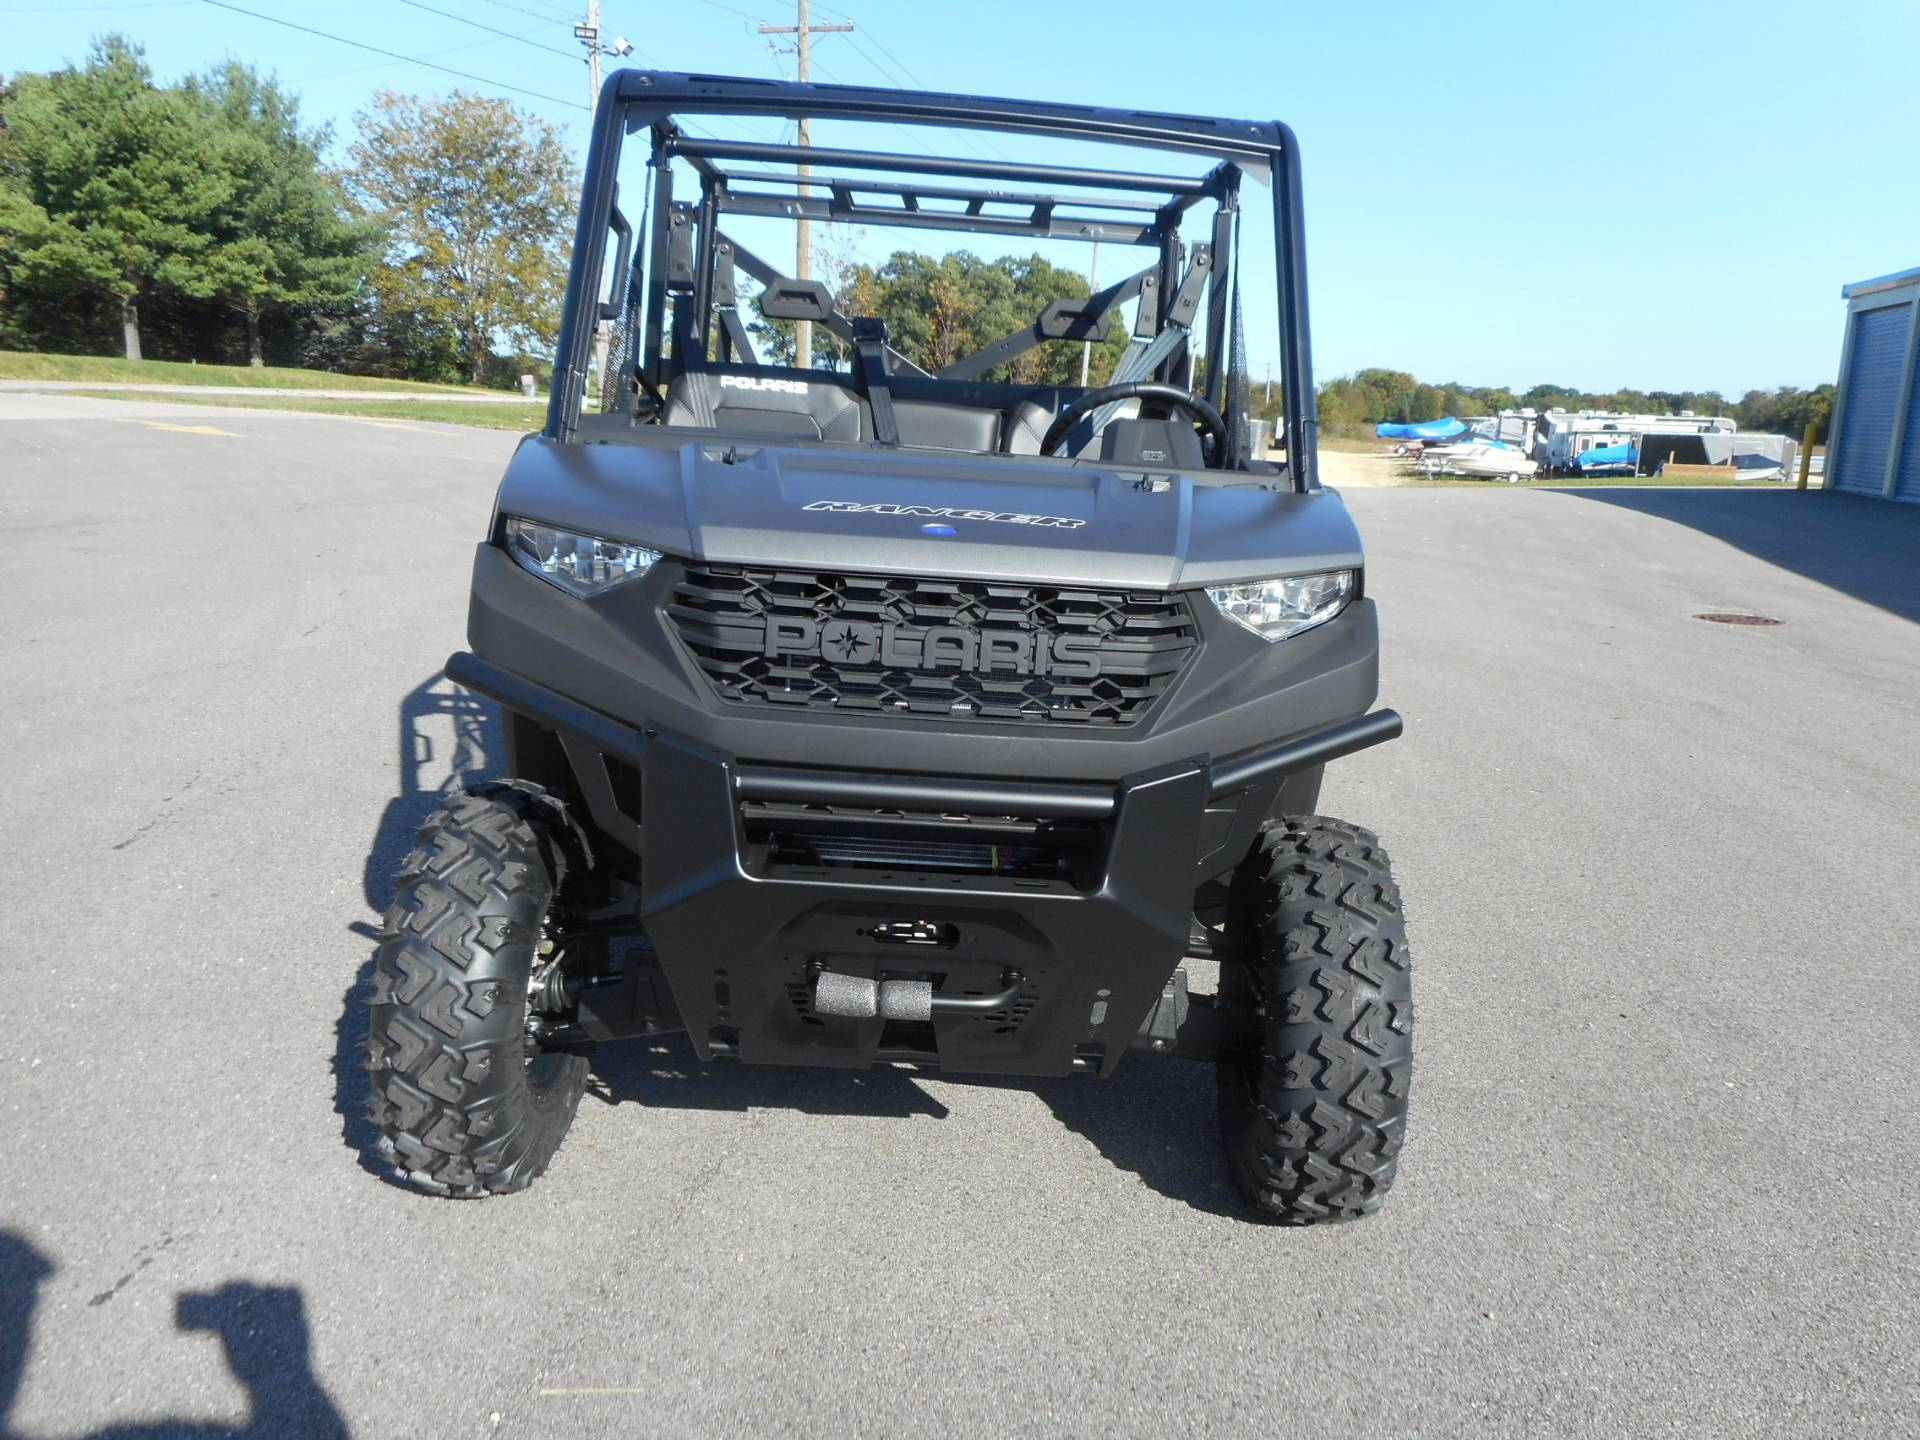 2020 Polaris Ranger Crew 1000 Premium in Belvidere, Illinois - Photo 10